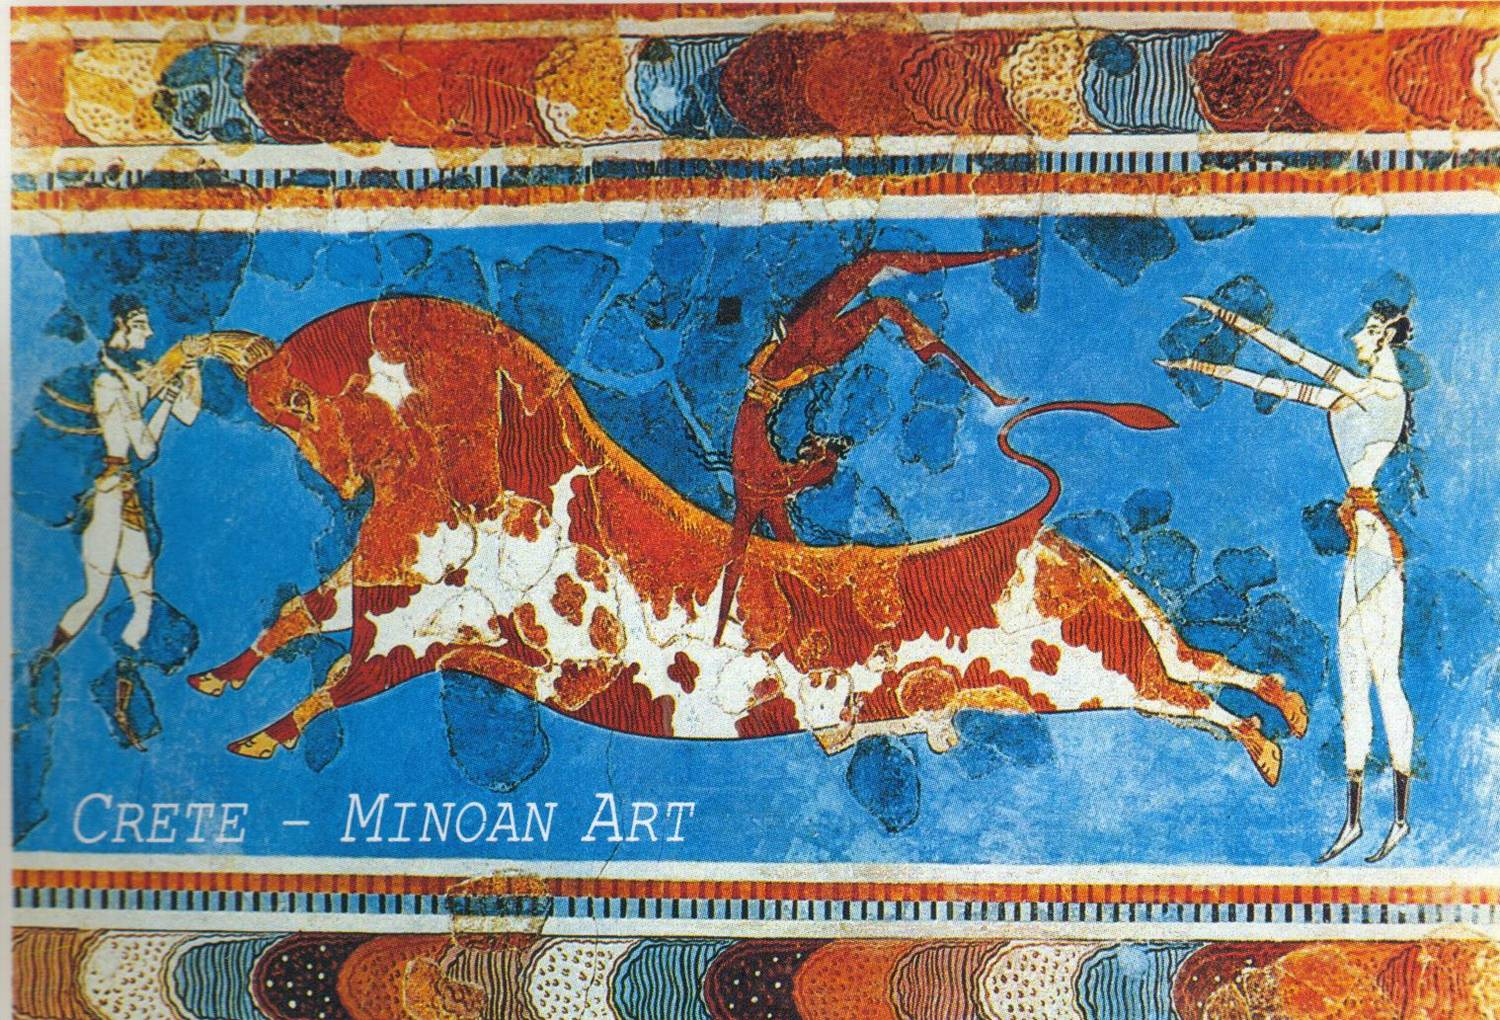 an analysis of the myths surrounding the minoan crete Modern scholarship characterizes this center as the minoan civilization, which   smaller ones, the largest of which (santorini) forms a crescent surrounding a  large caldera  santorini: volcano, natural history, mythology  [3] similarly,  driessen and macdonald 1997, 106-113, provide a useful summary of the  arguments.